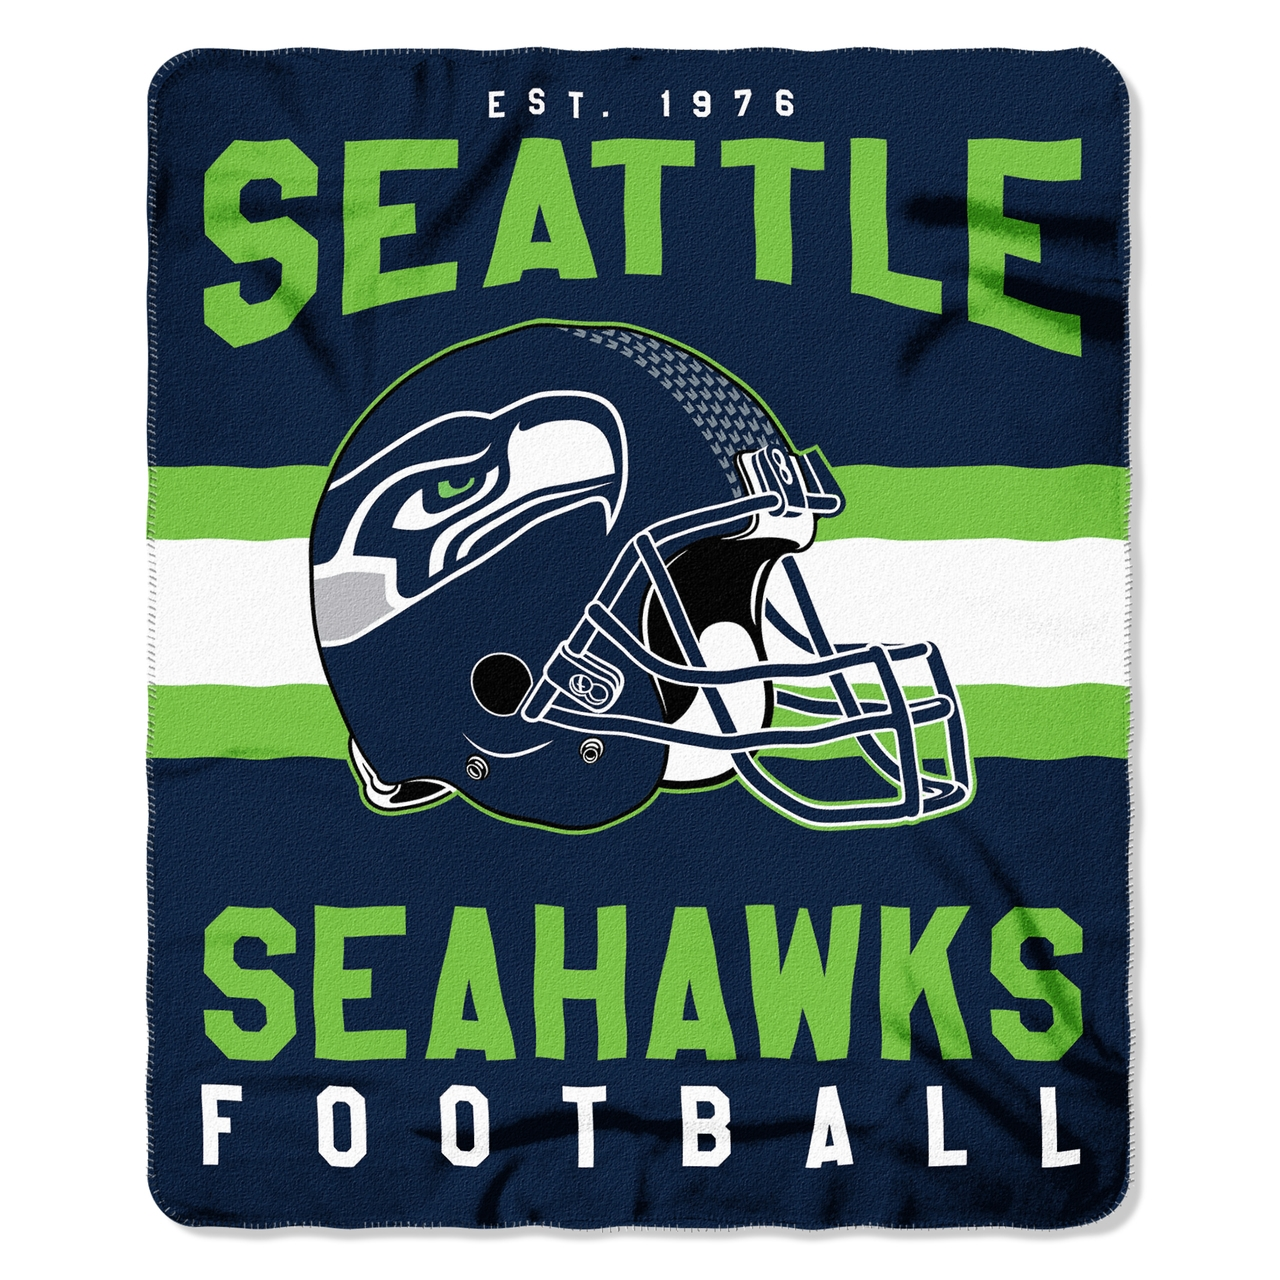 Gifts Fleece - 8791835020 - Seattle Seahawks Blanket 50x60 Fleece Singular Design